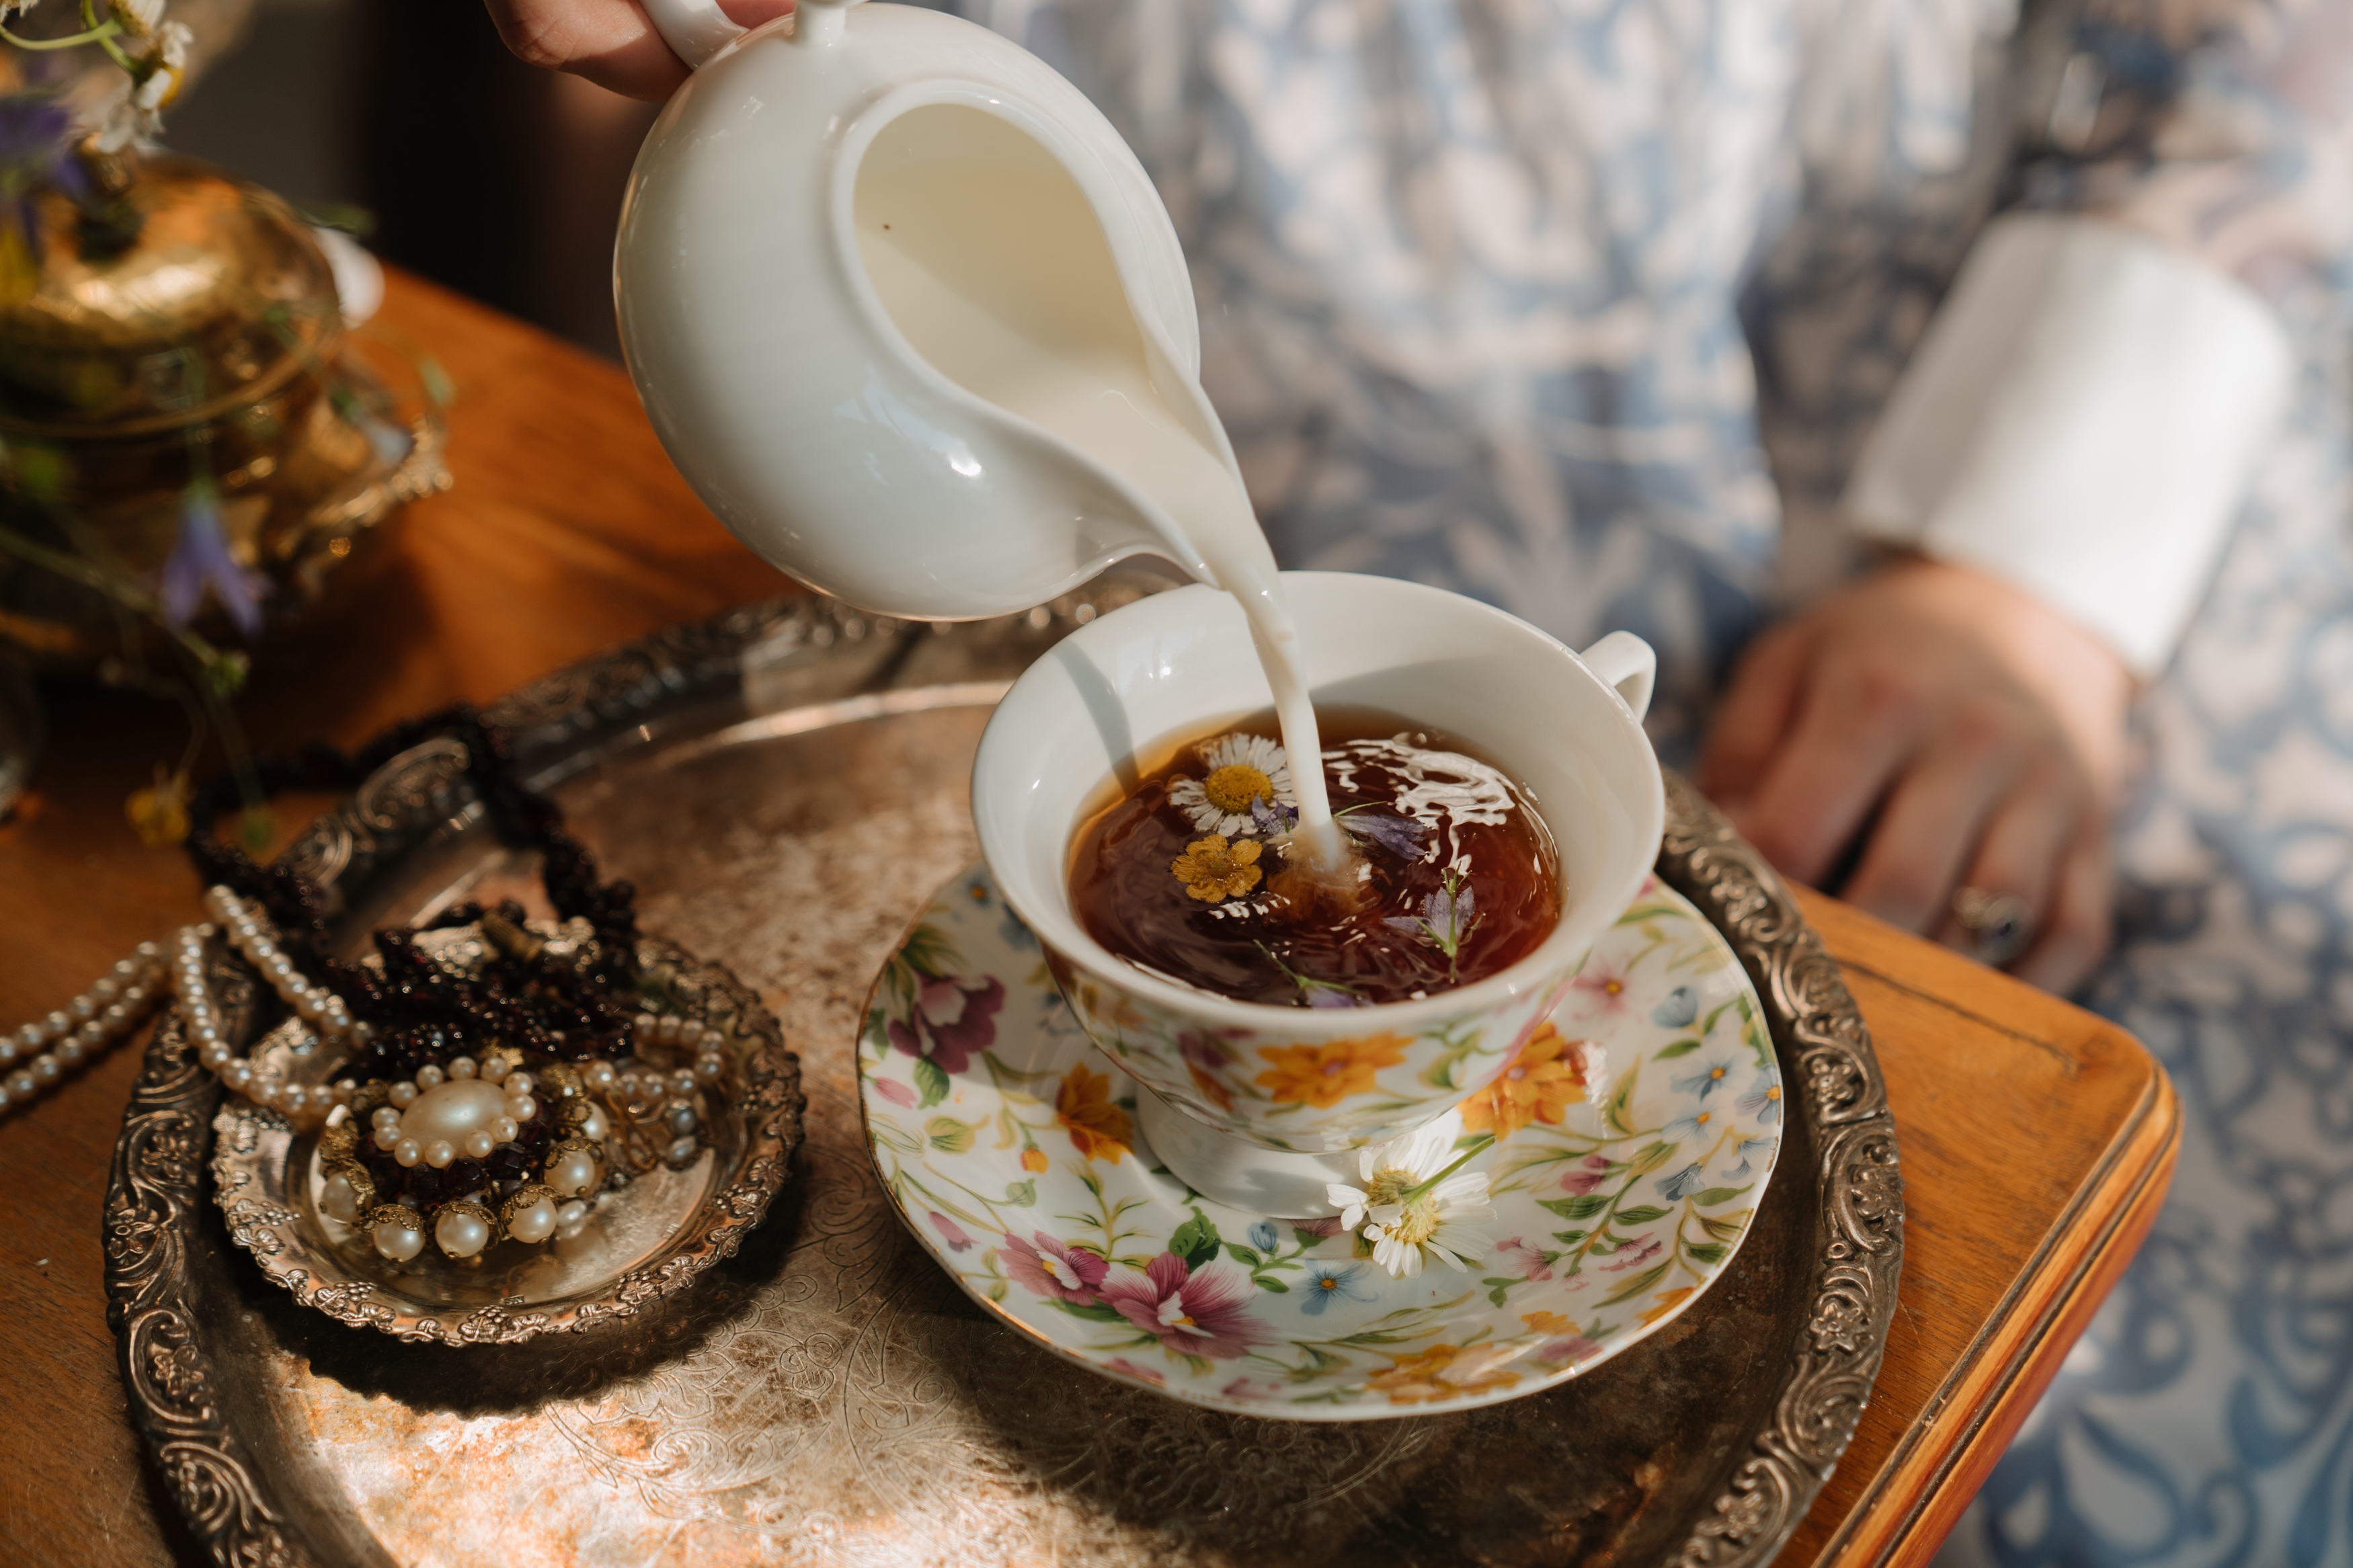 Milk being poured into tea